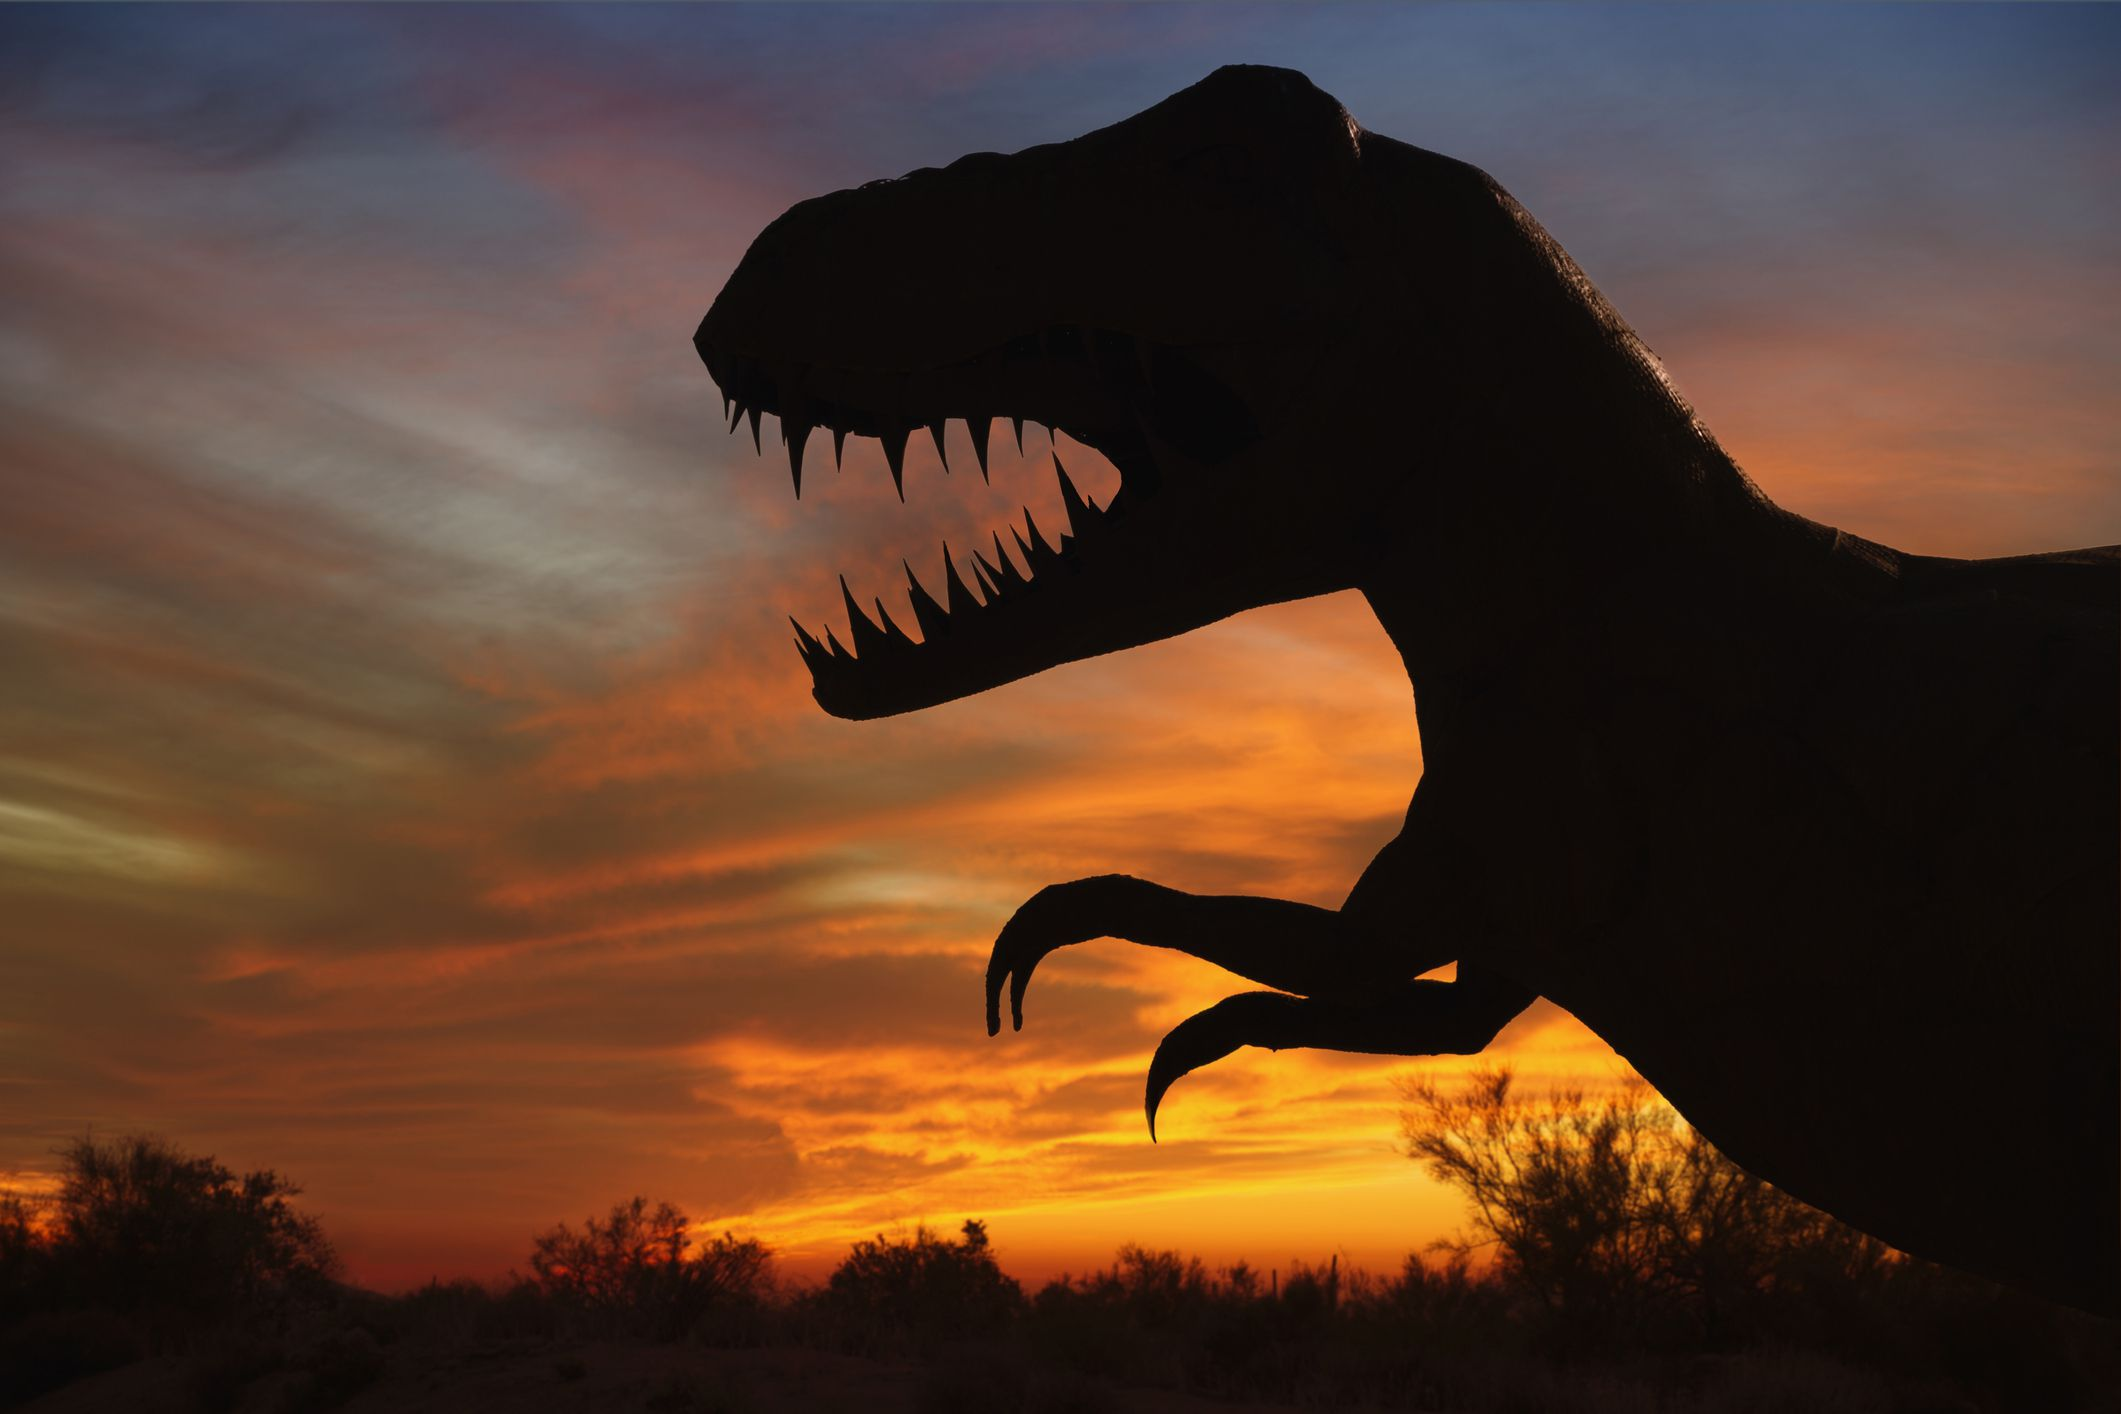 silhouette of t-rex sculpture at sunset, showing profile with large head and small, short arms